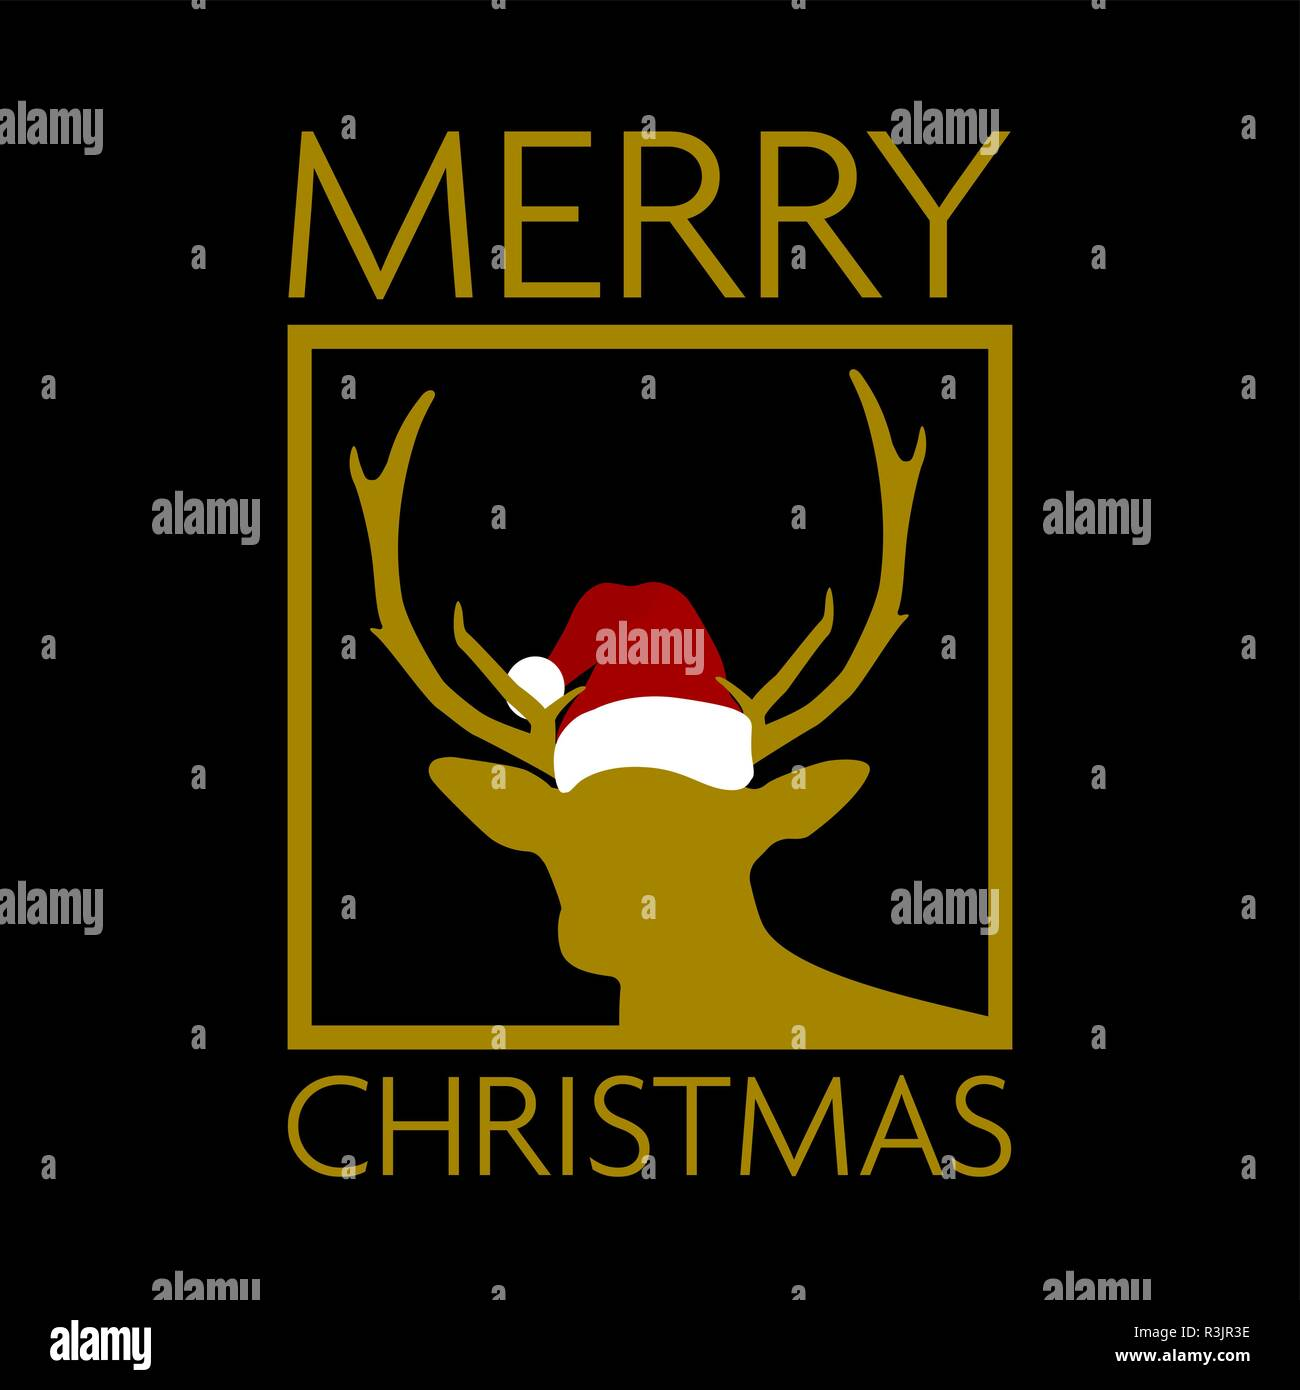 cc5fd46796d black and gold christmas card with reindeer silhouette wearing santa hat -  Stock Vector